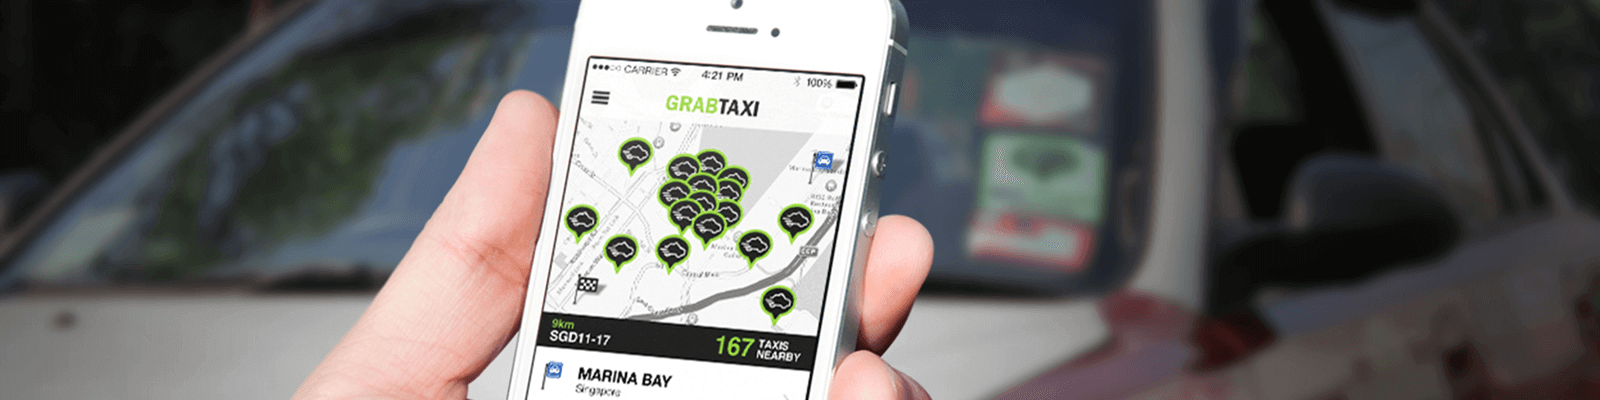 application like grab taxi